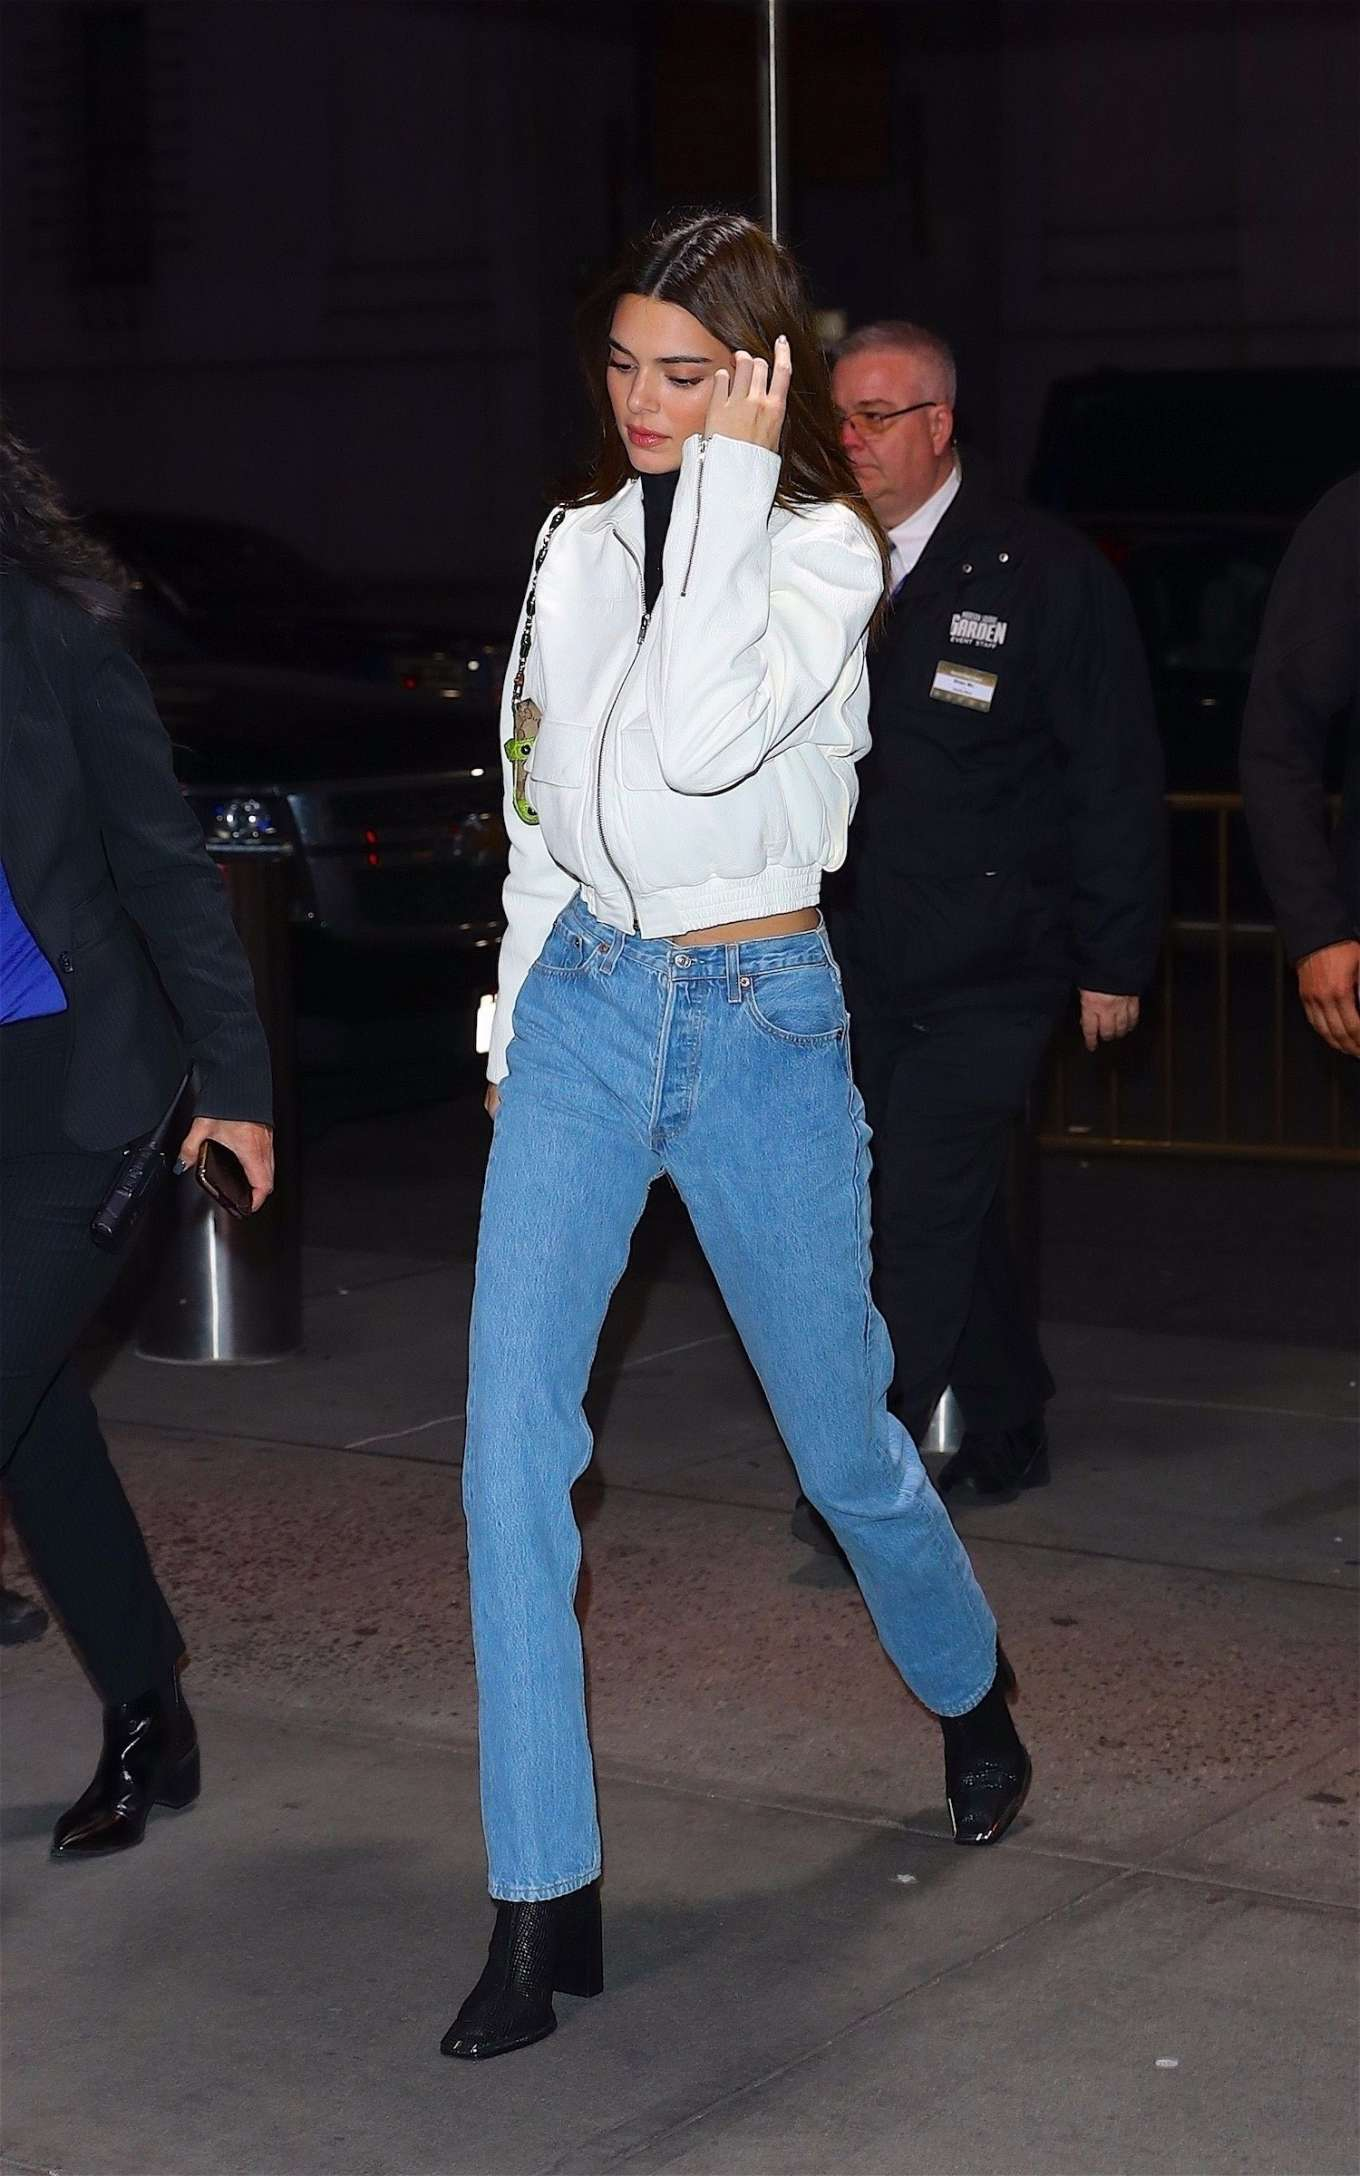 Kendall Jenner 2019 : Kendall Jenner – Wearing blue jeans in NY-08